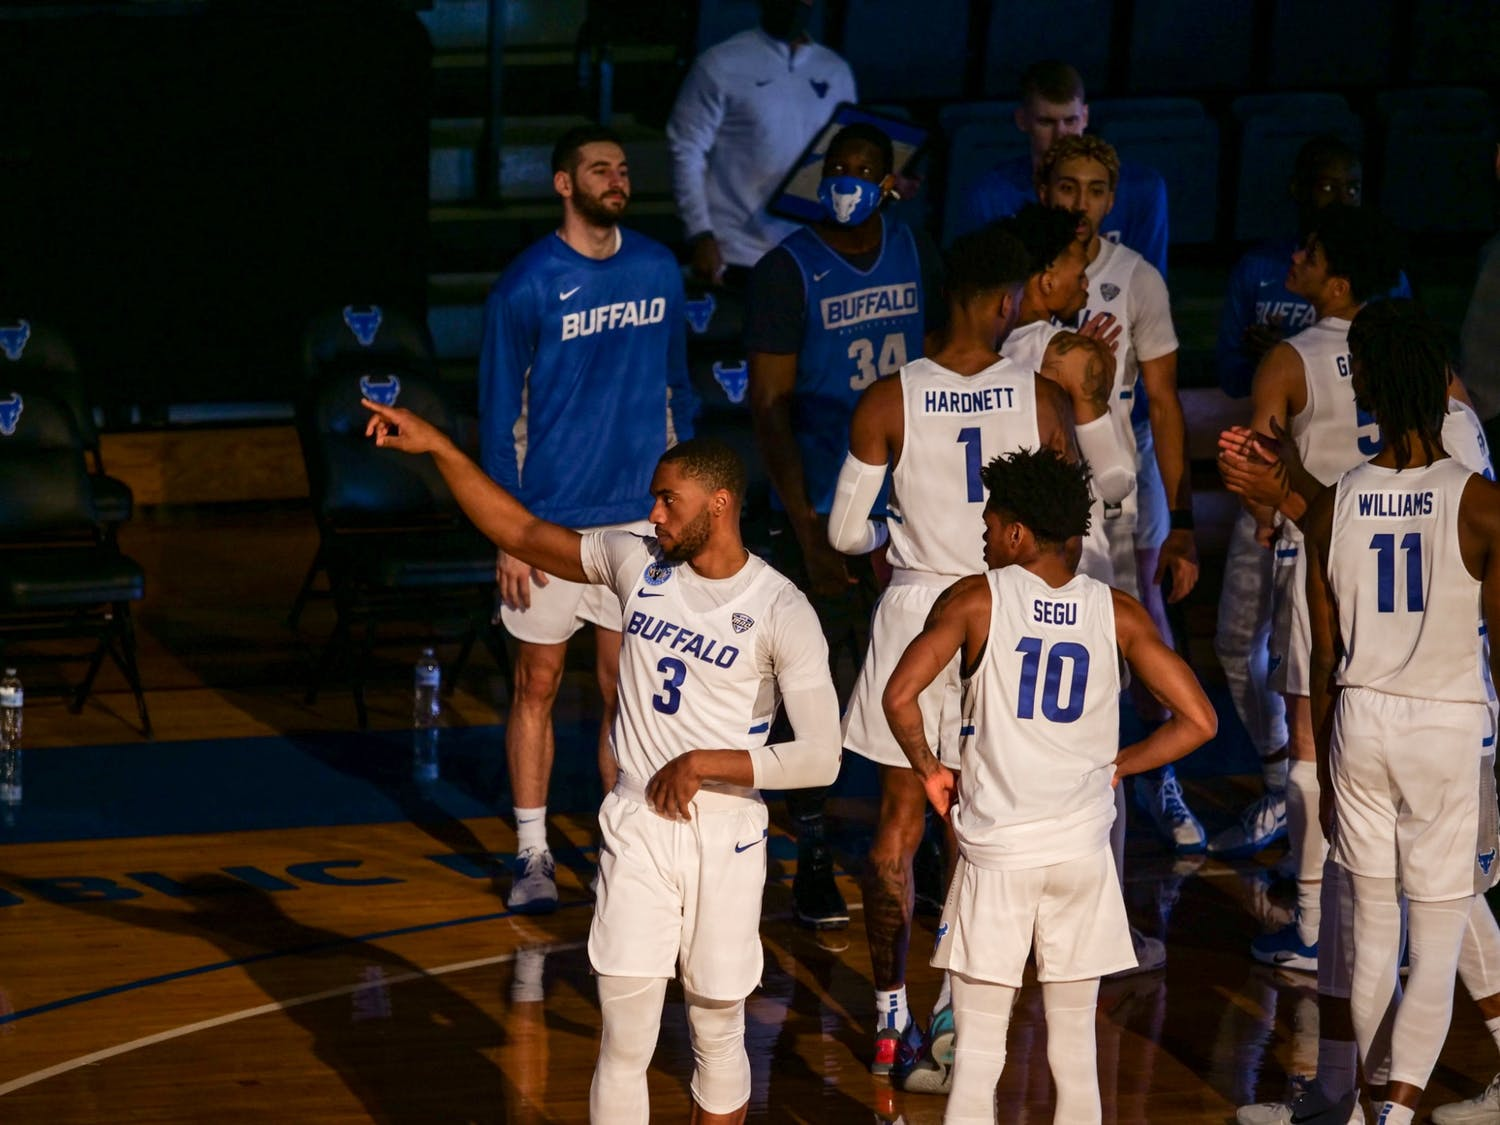 Freshman guard Chanse Robinson (not pictured) has left the men's basketball program, UB Athletics confirmed Sunday.